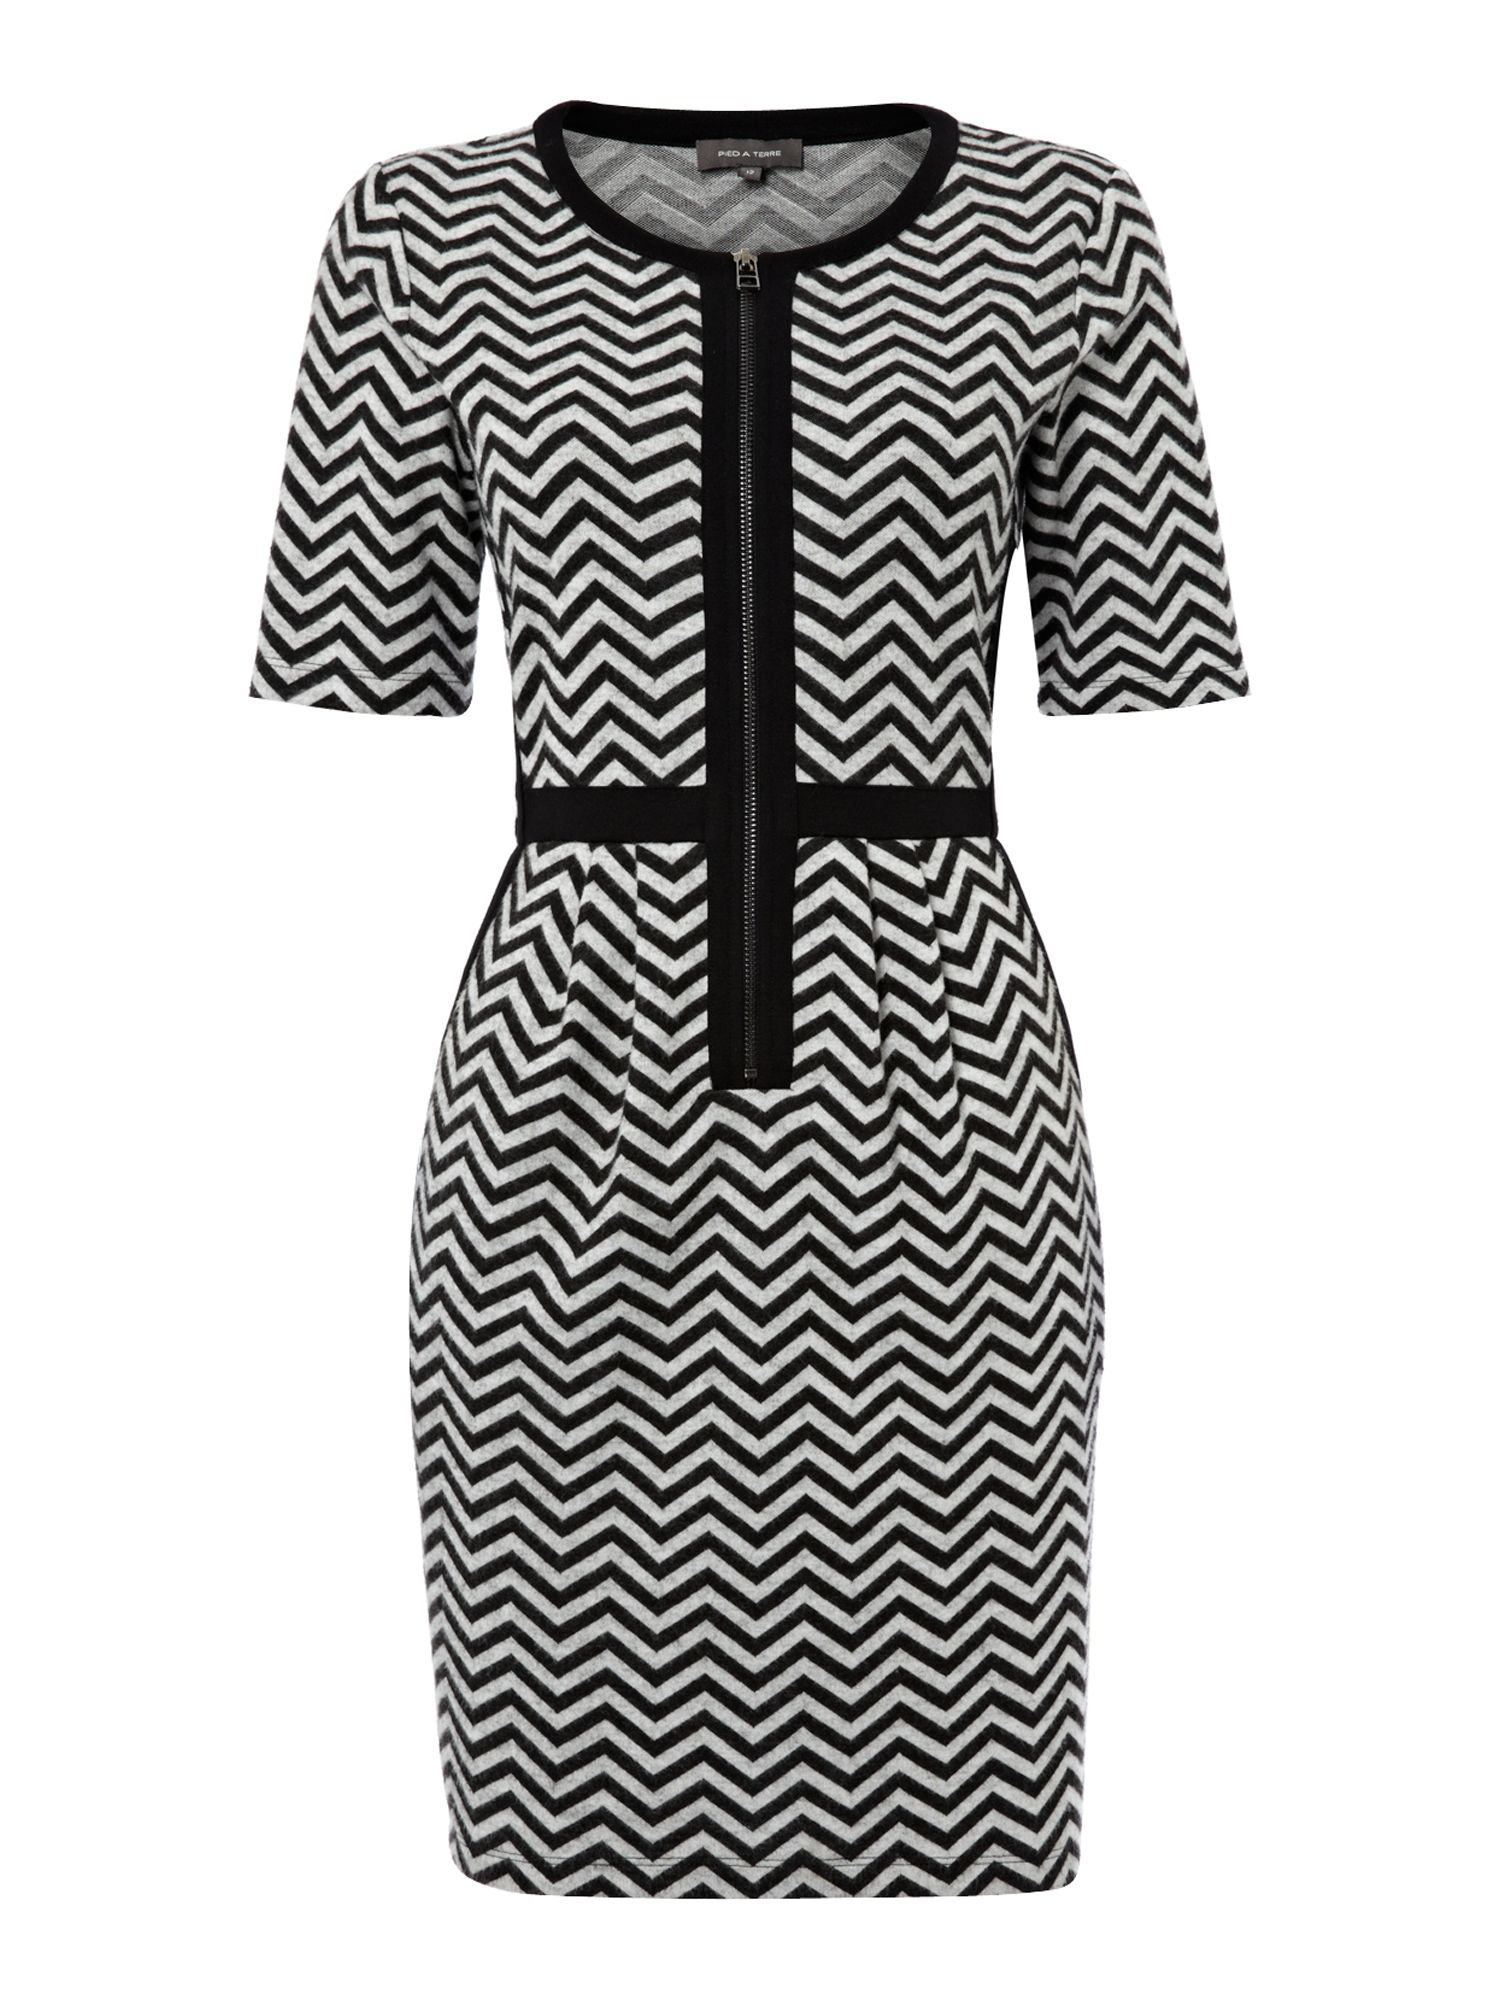 Zig zag sweater dress